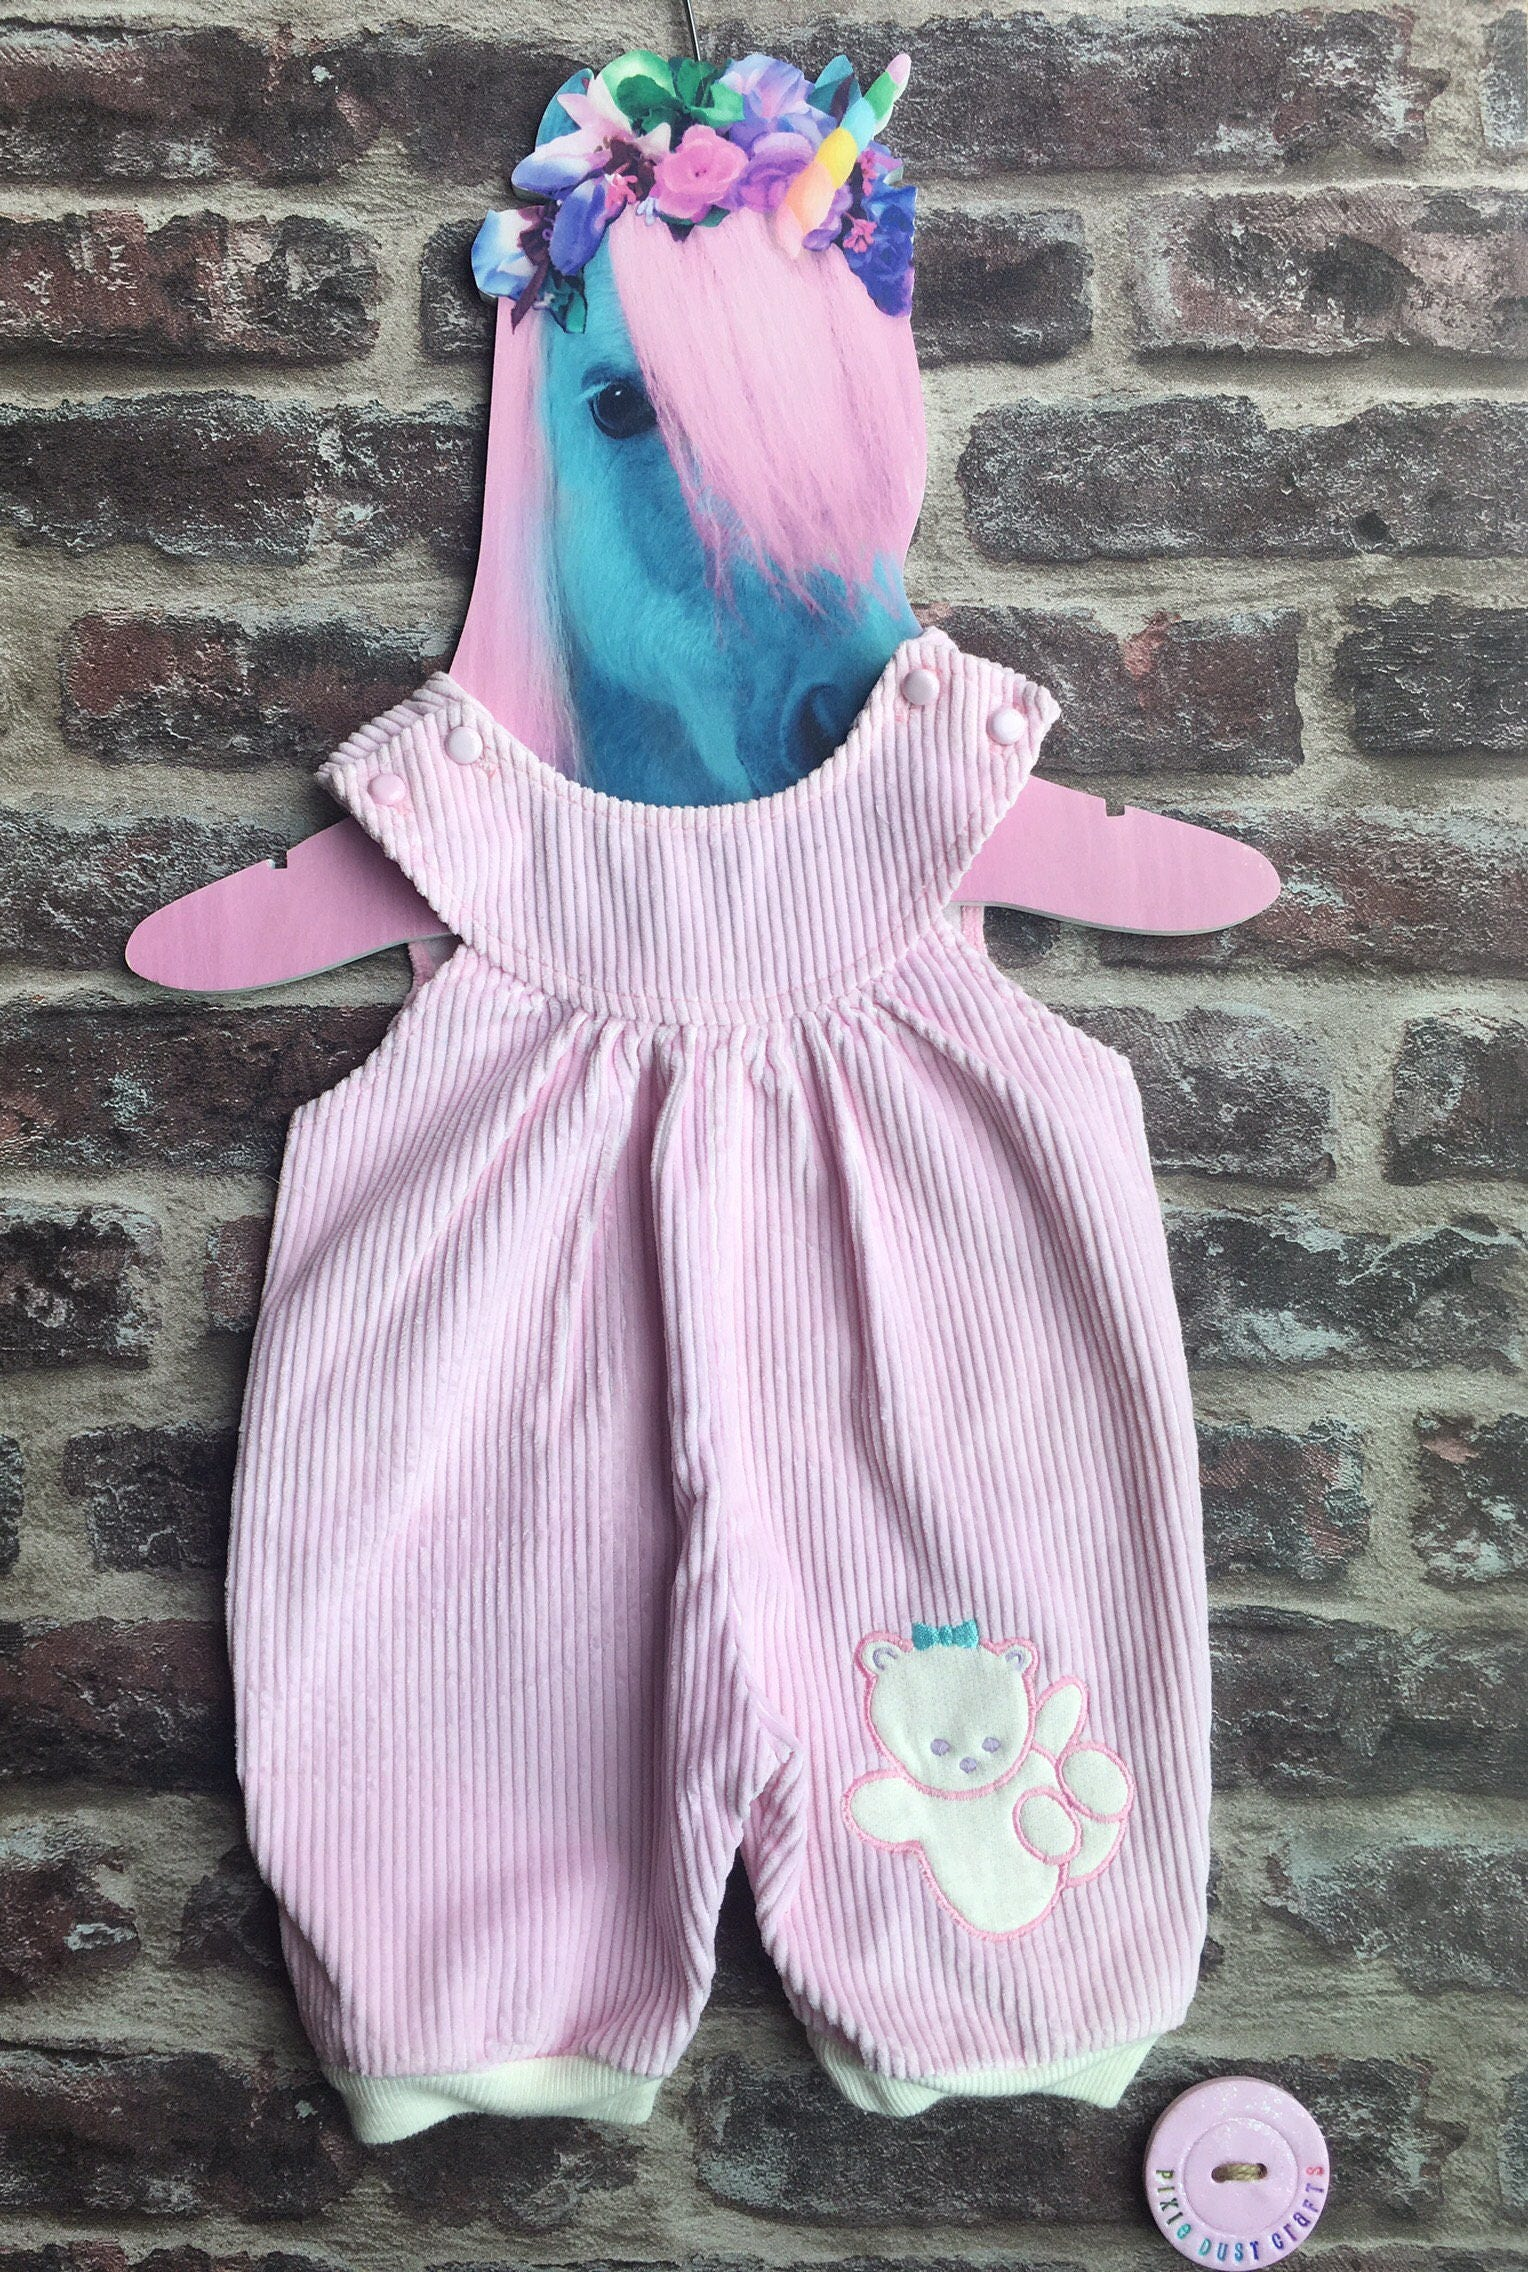 Vintage baby dungarees vintage baby cords baby pink dungarees vintage baby Debenhams girl baby shower vintae baby outfit cute baby set